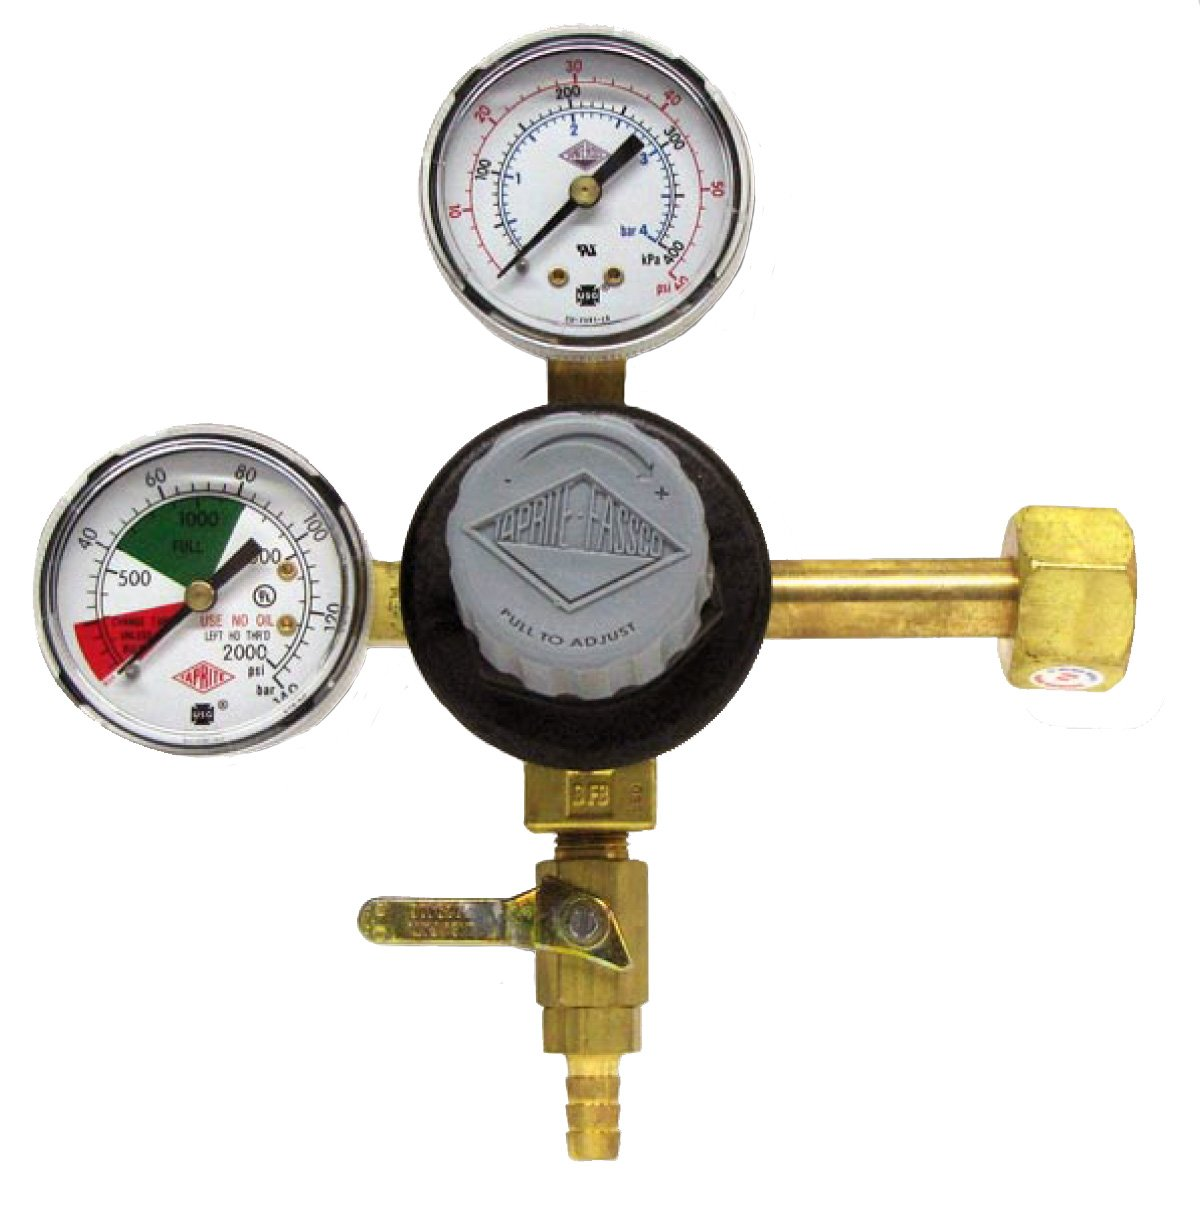 "TAPRITE E-T742 CO2 Primary Beer Dual High Pressure Gauge New - CGA 320 Inlet 5/16"" Barb Shutoff (Brass Body)"